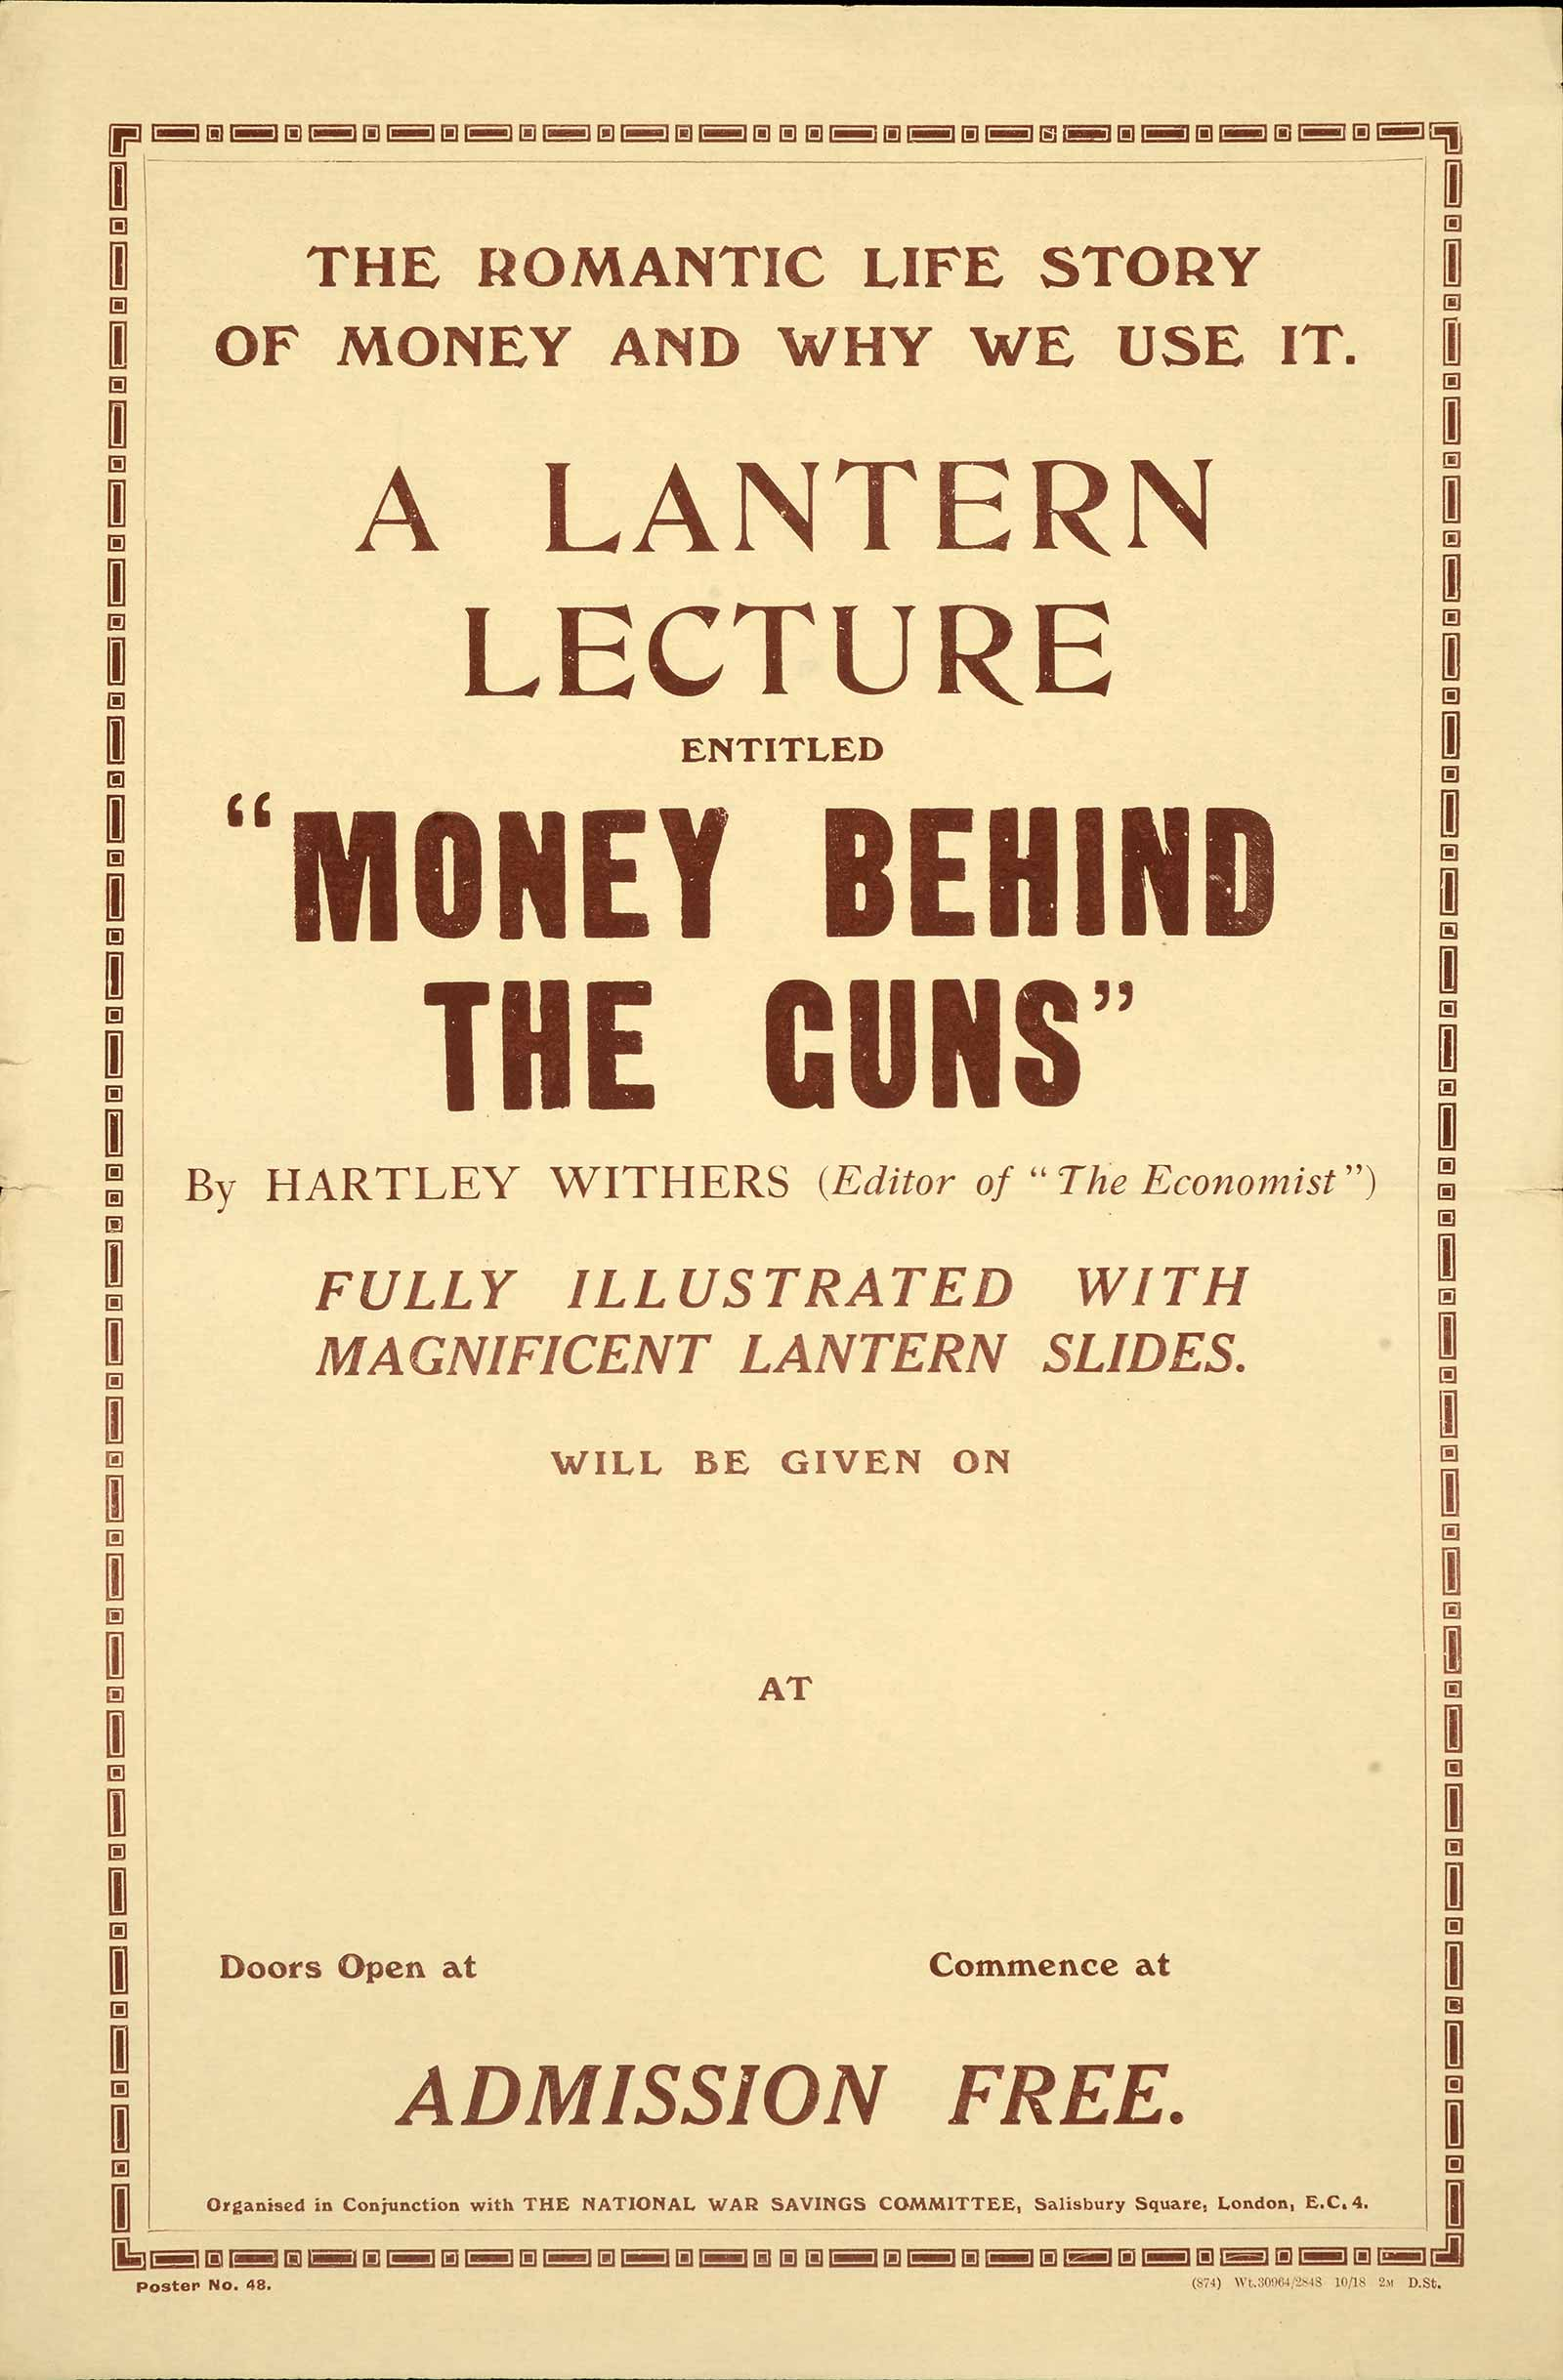 Image of poster advertising a lantern lecture called 'The Money Behind the Guns'